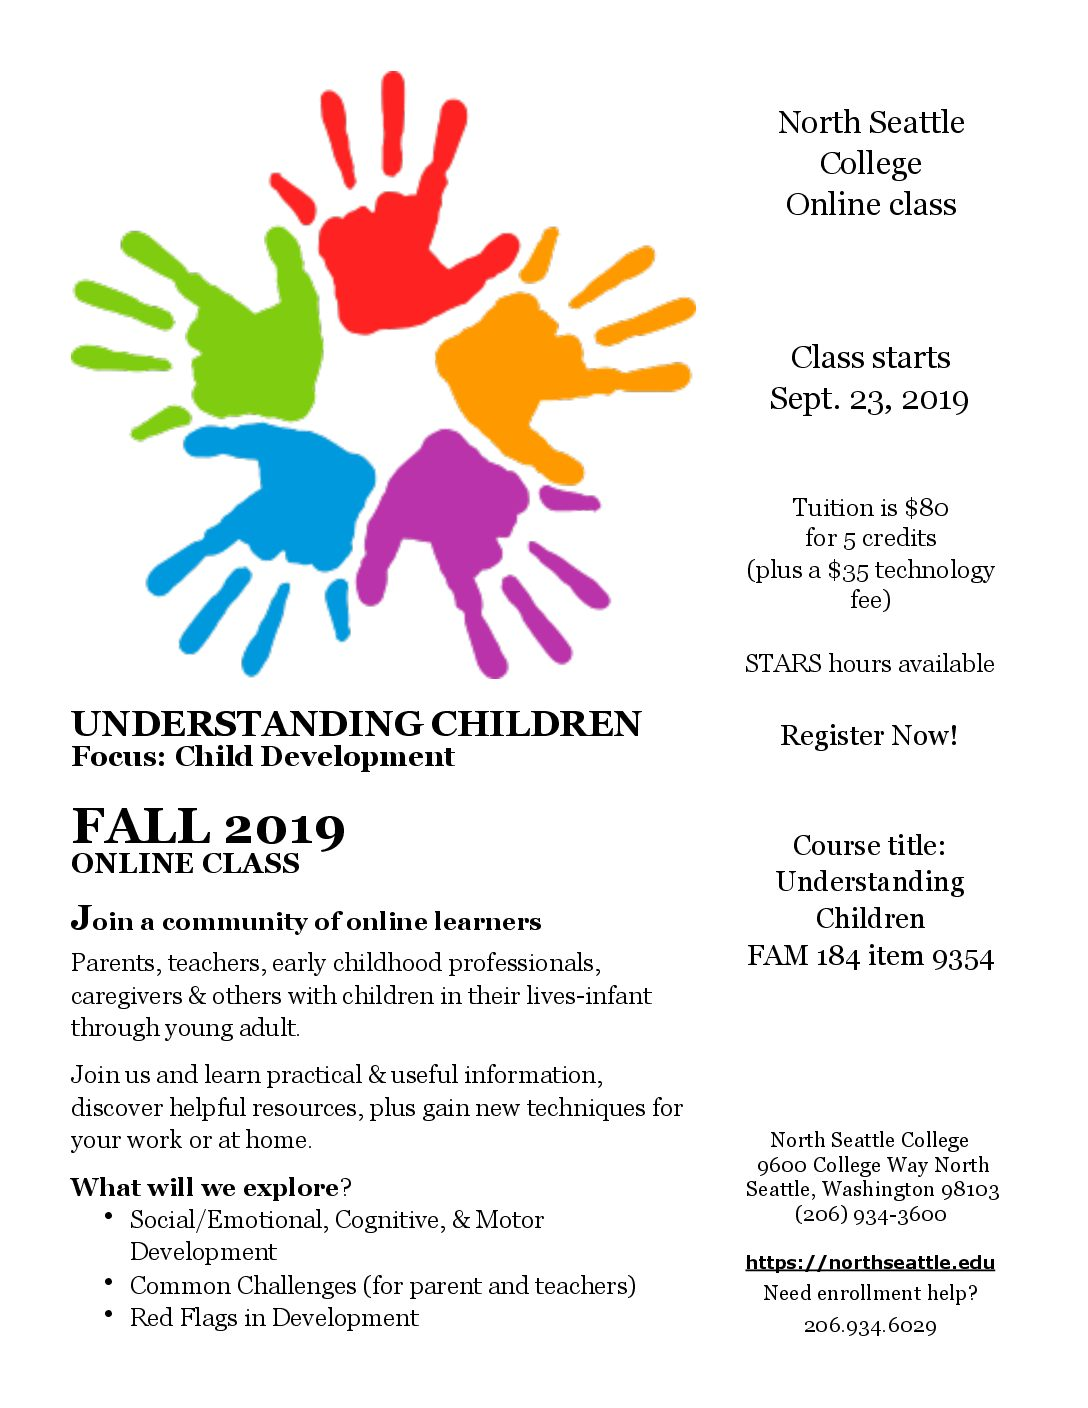 Fall 2019 Online Class: Register Now